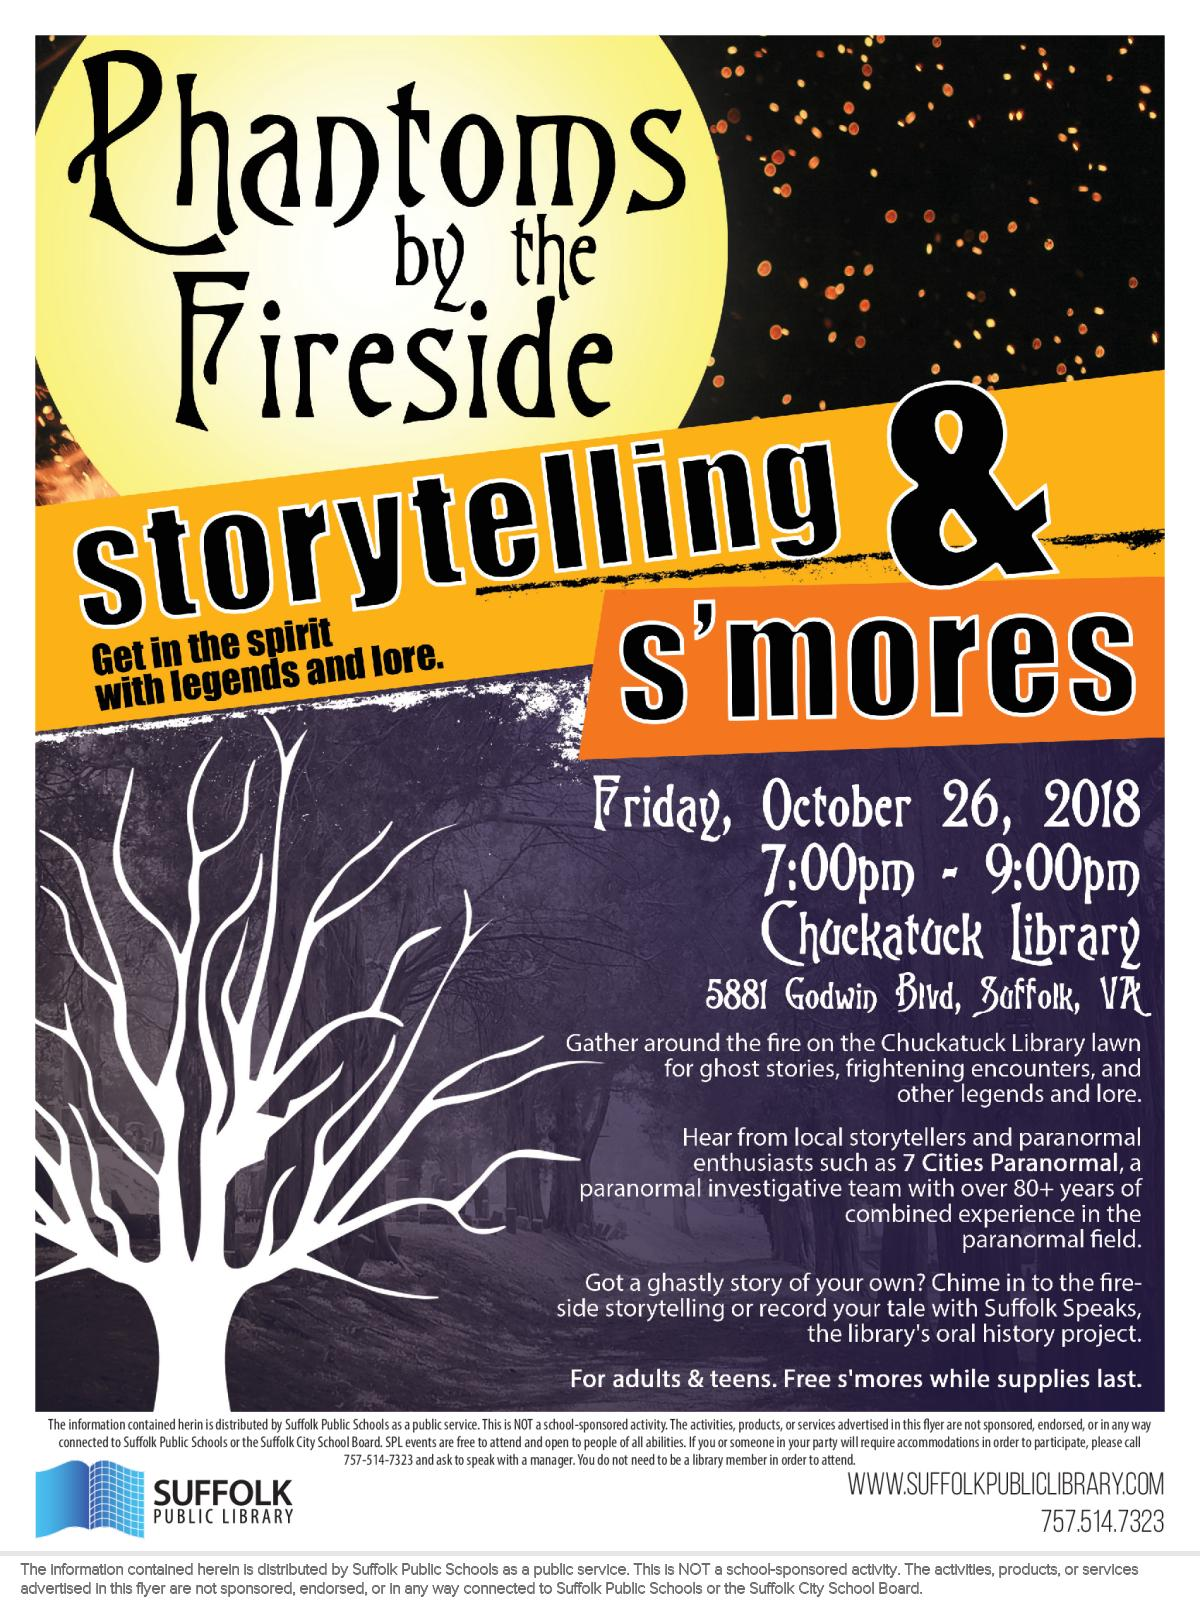 Image of a flyer titled Phantoms by the Fireside Storytelling & S'mores